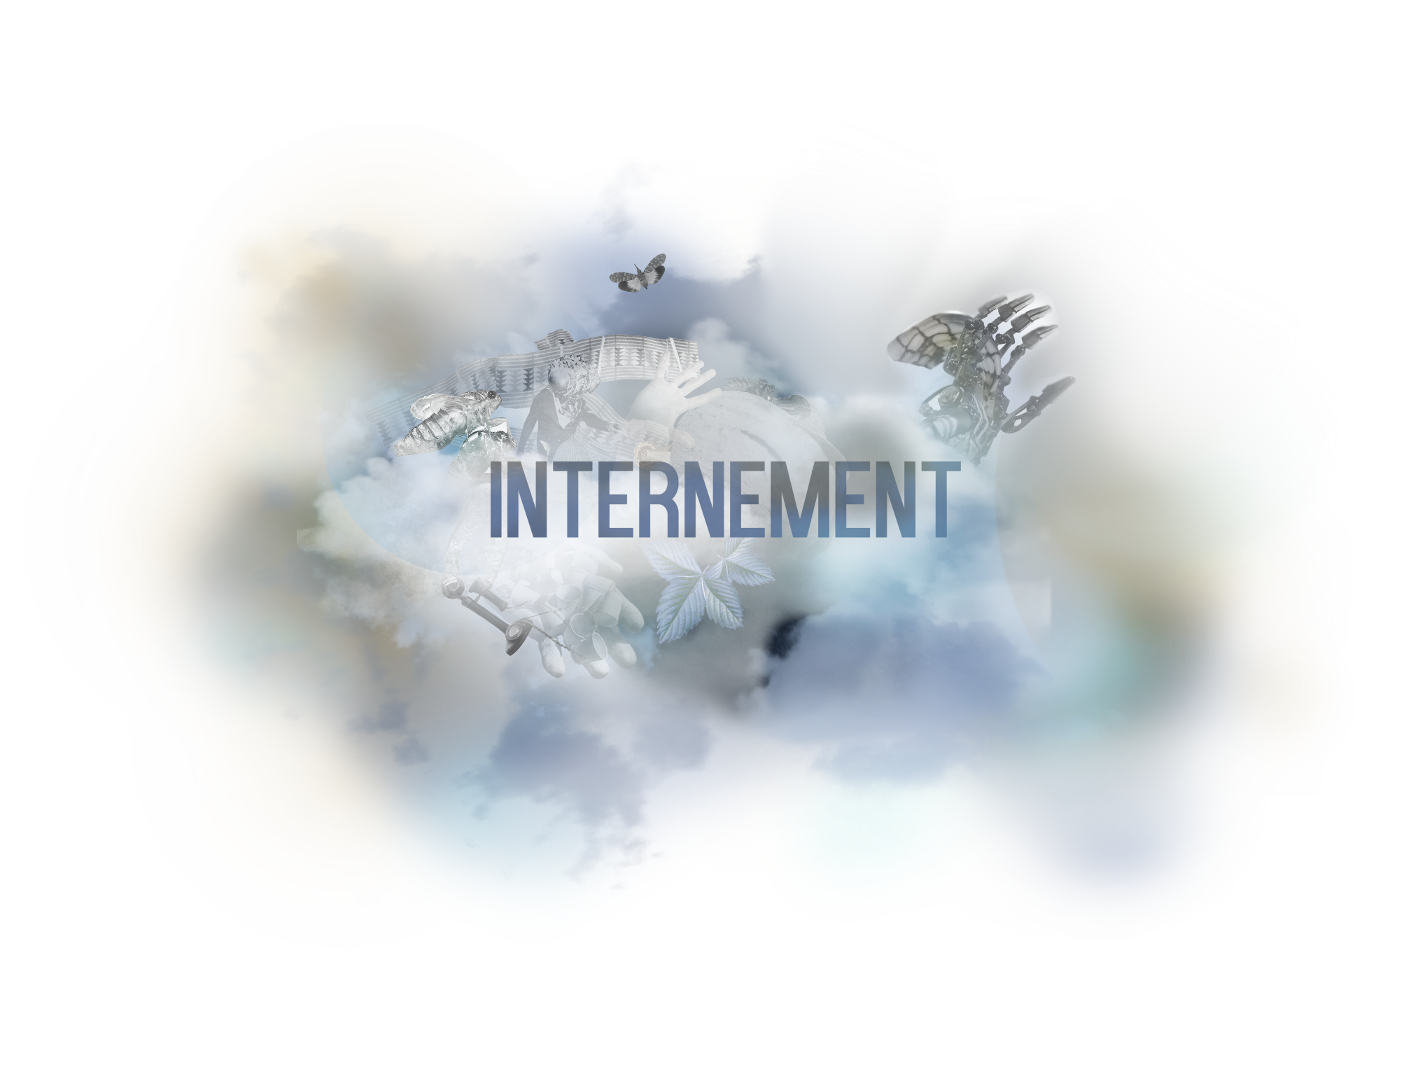 Internement - Les zones